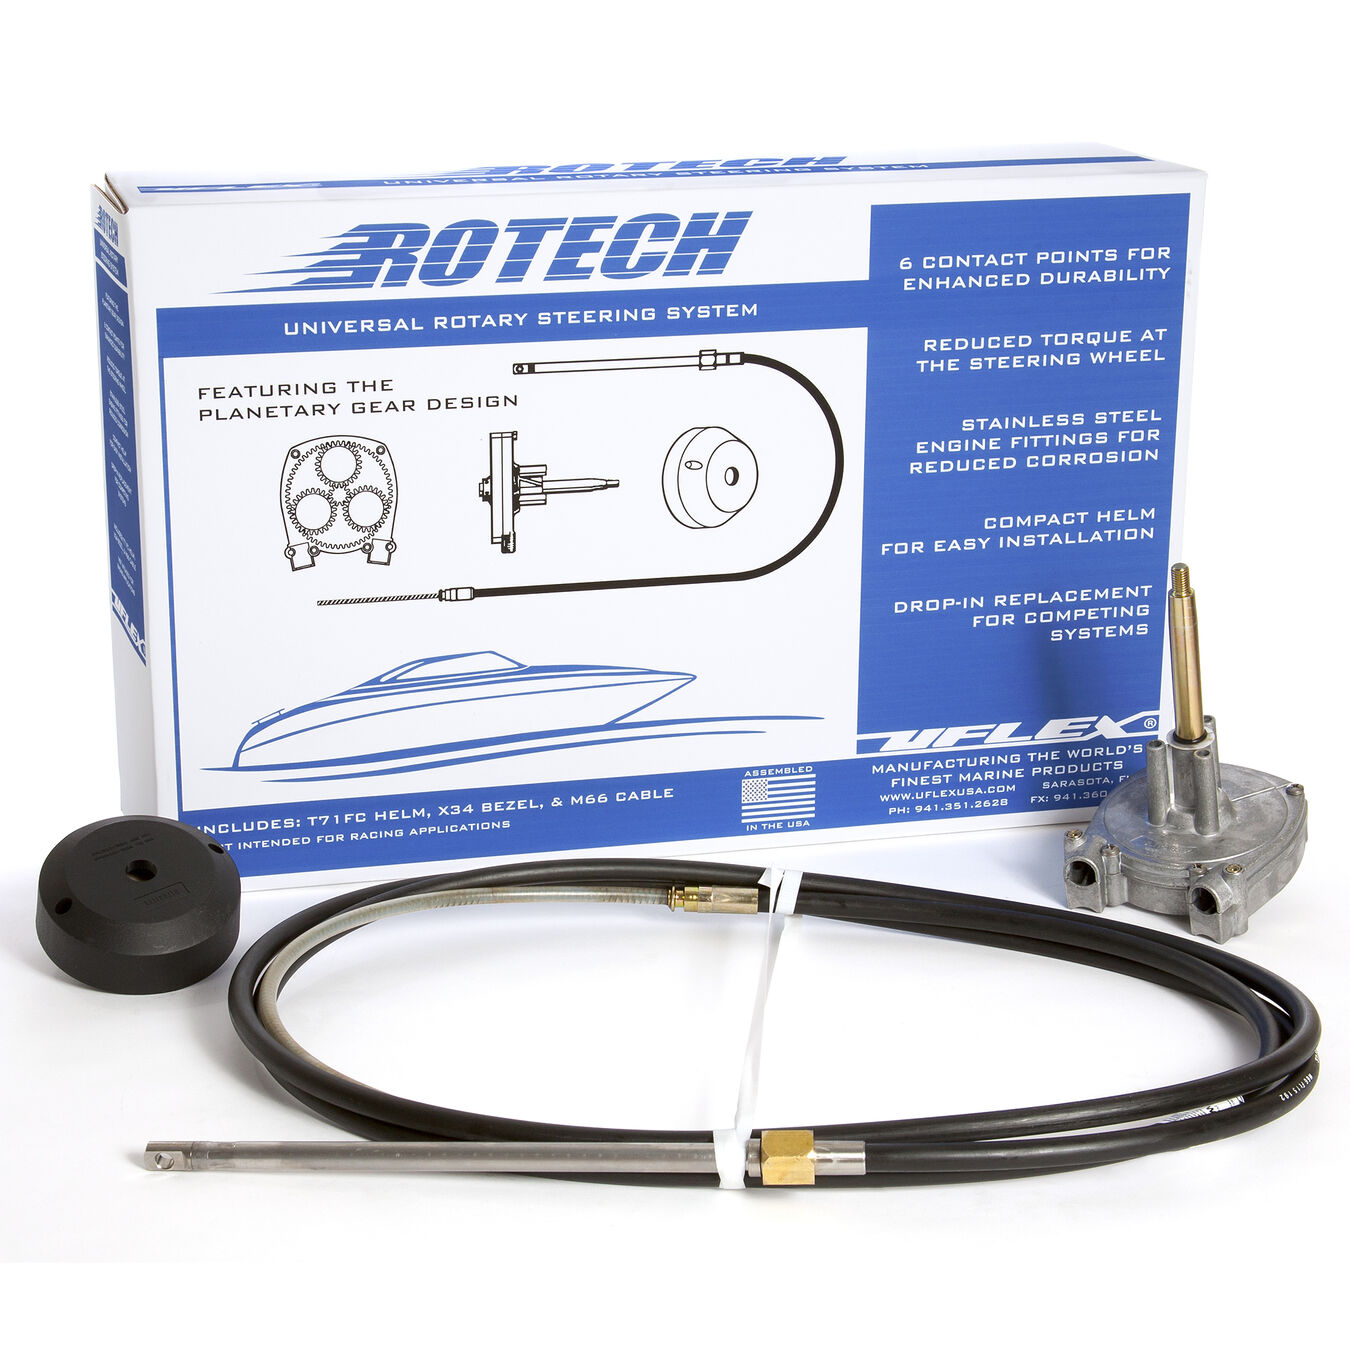 uflex rotech rotary steering system